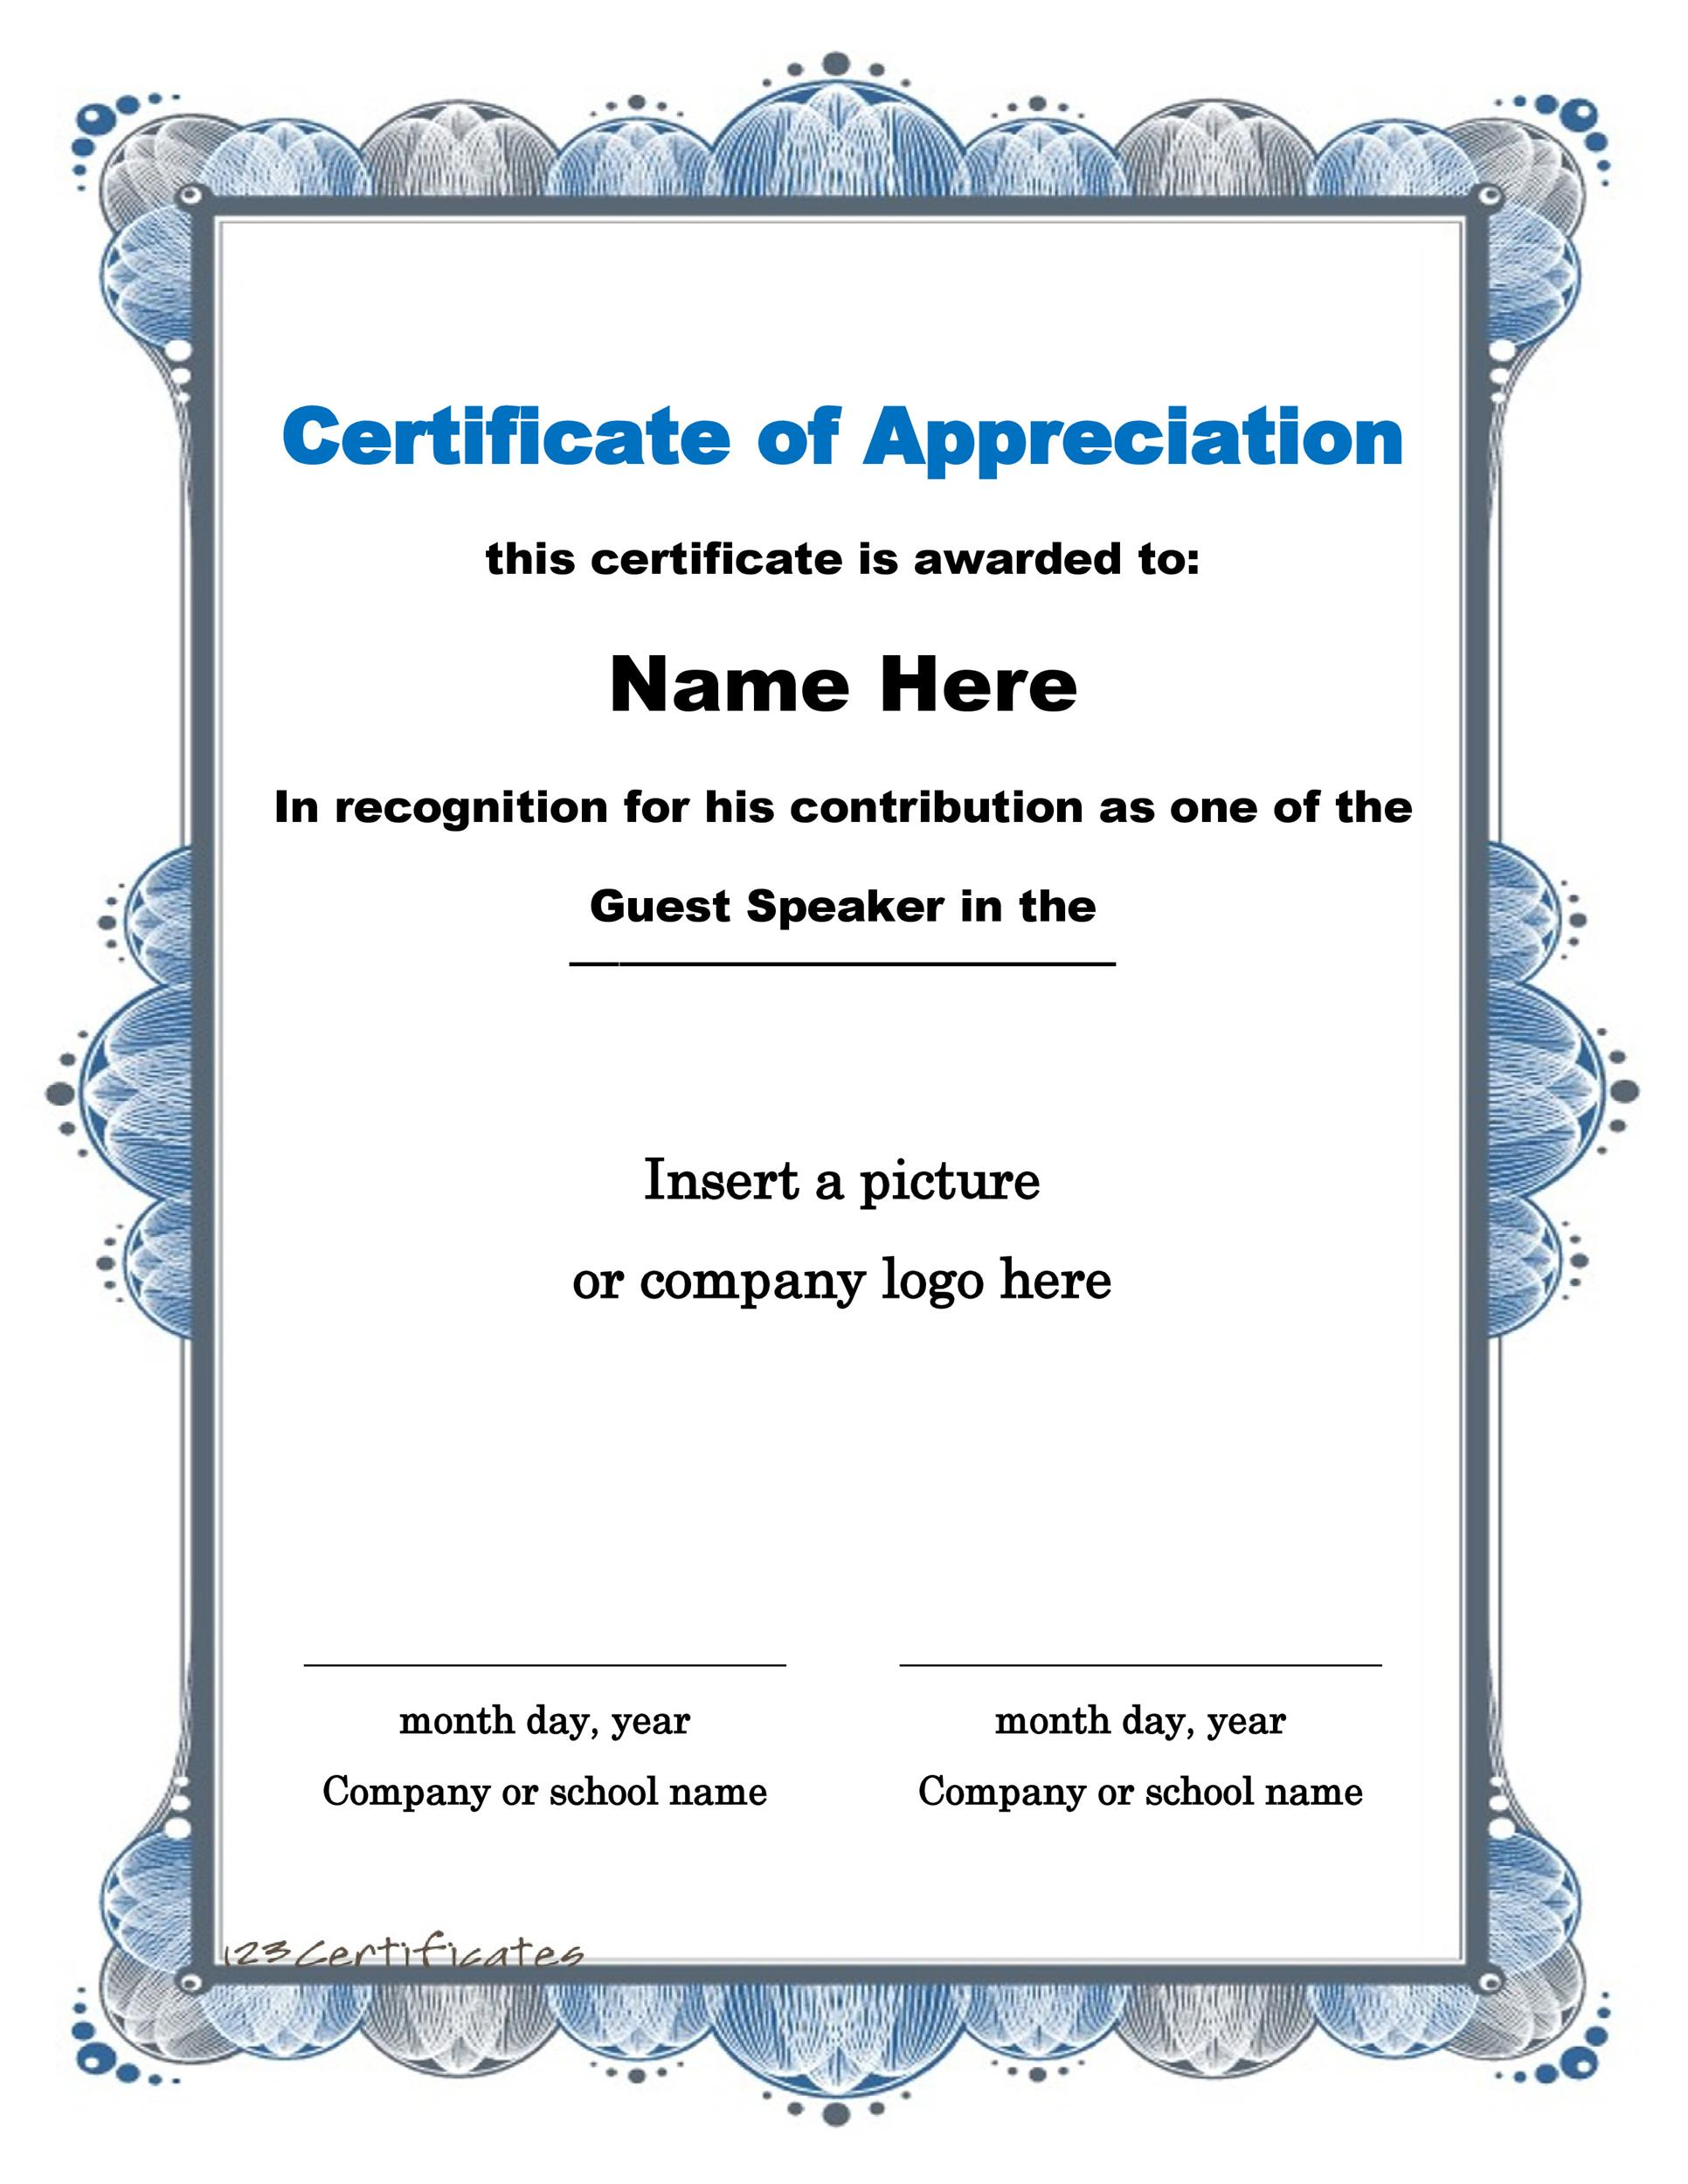 Samples certificate certificate samples printable certificate 30 free certificate of appreciation templates and letters yadclub Image collections